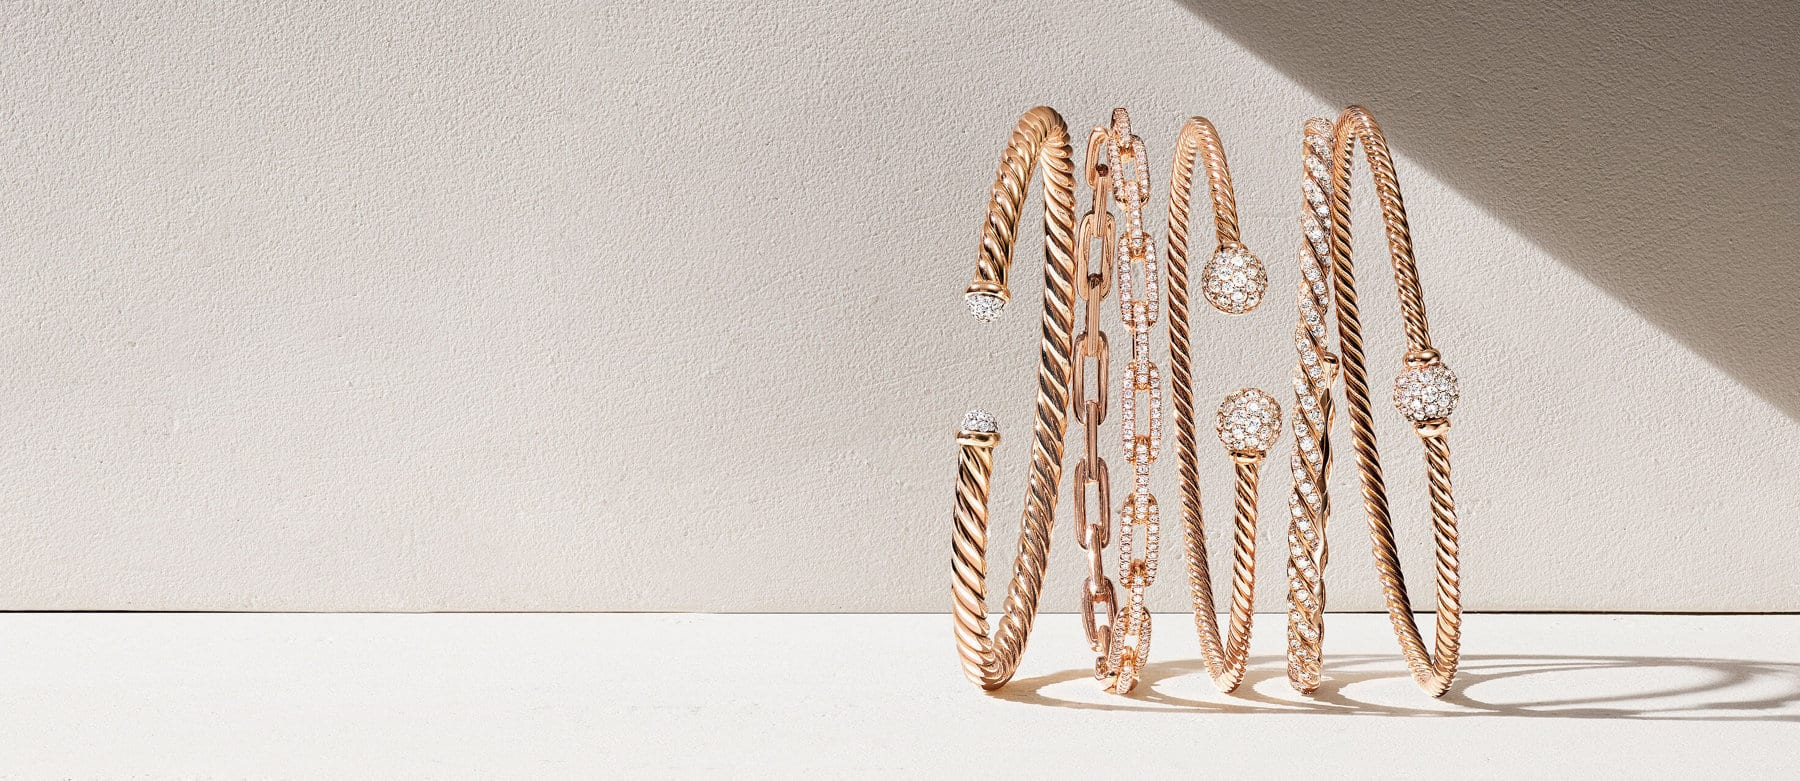 A color photograph shows five David Yurman rose gold-and-diamond bracelets from the Cable, Stax, Solari and Pavéflex collections atop a beige surface.